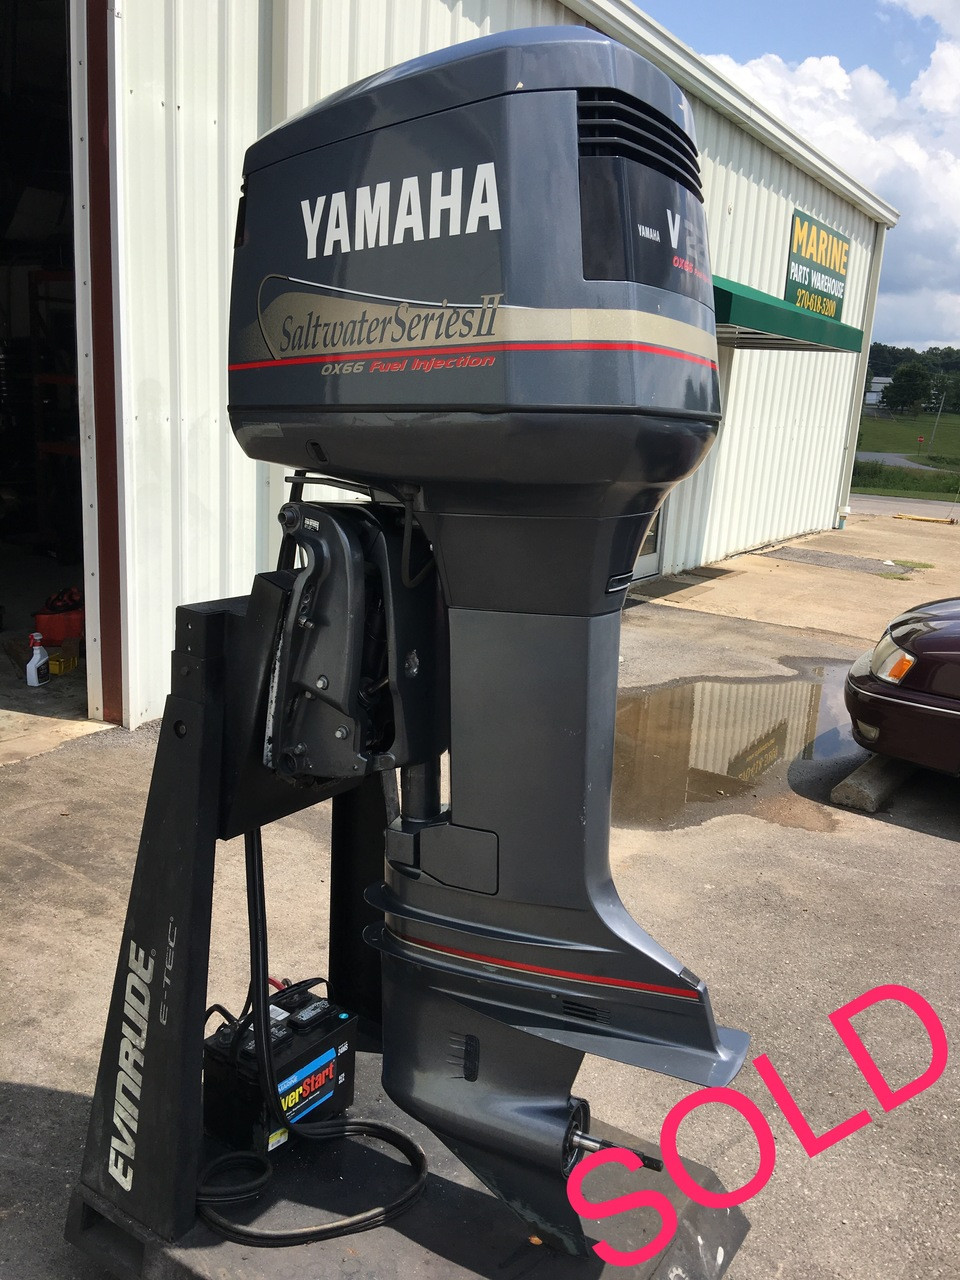 hight resolution of 2001 yamaha v225 saltwater series ii ox66 fuel injection 3 1l v6 2 stroke 30 outboard motor